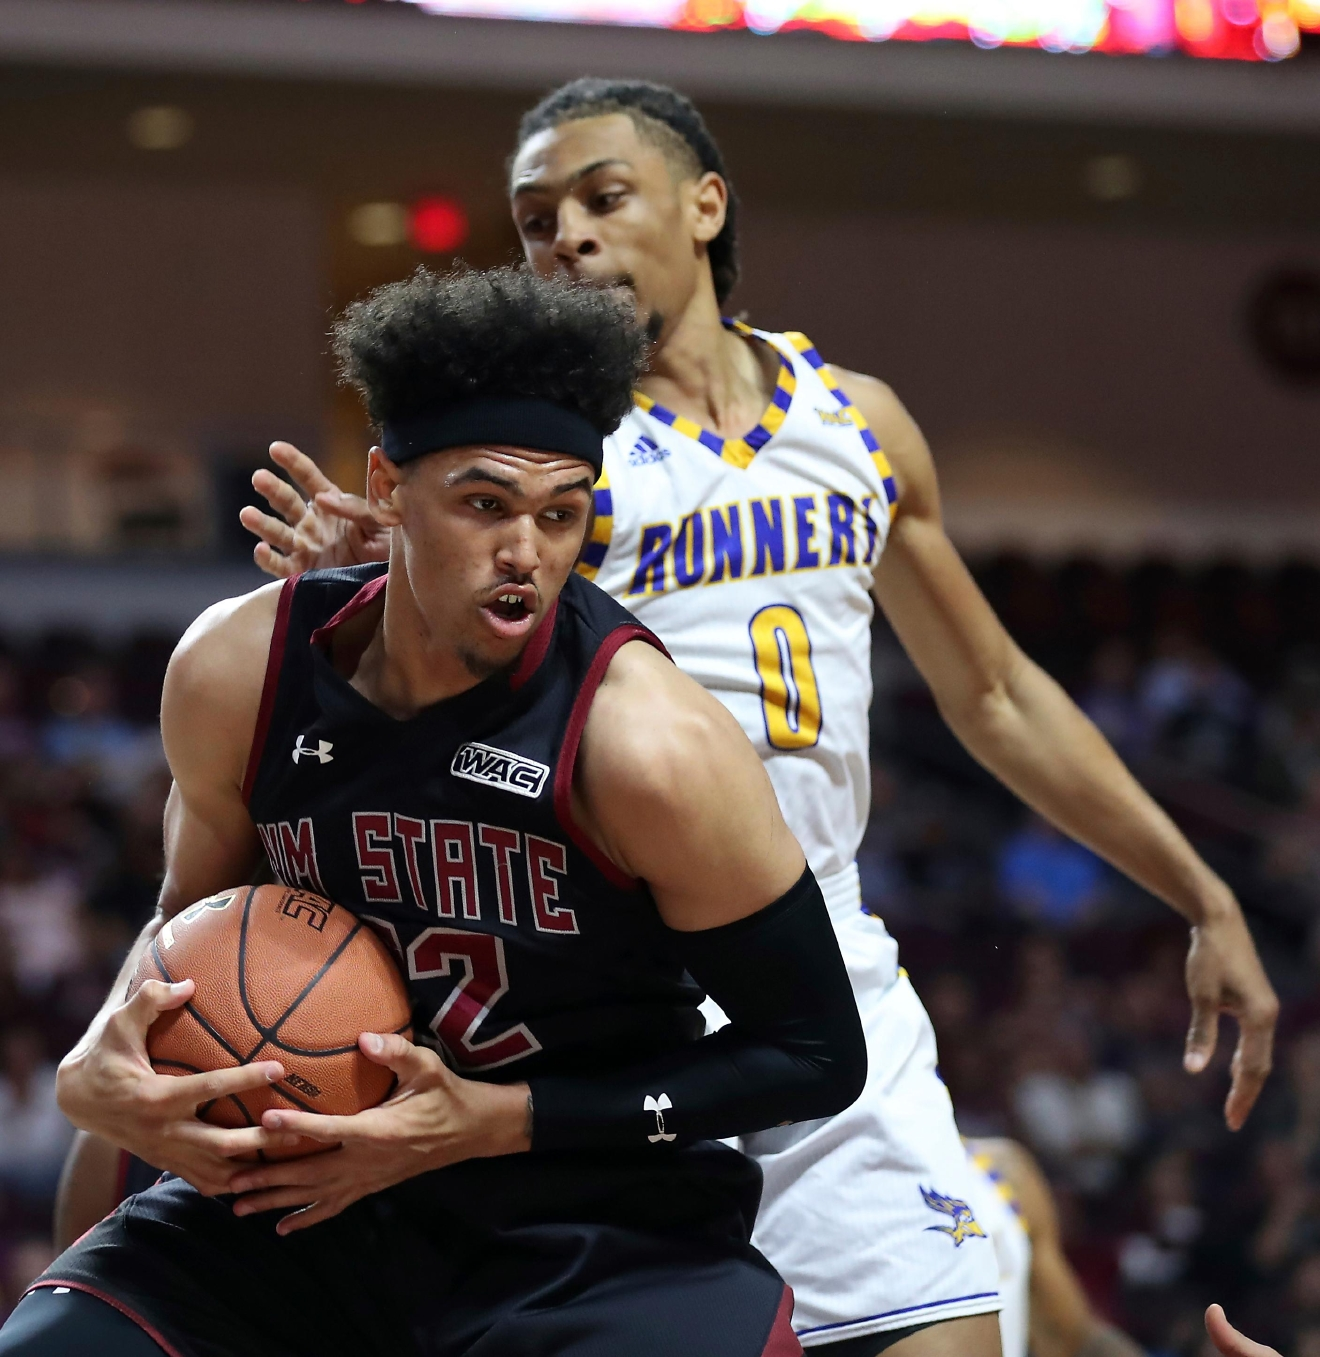 New Mexico State forward Eli Chuha (22) secures the ball with Cal State Bakersfield forward Matt Smith (0) defending during the second half of their NCAA college basketball game in the final of the Western Athletic Conference tournament Saturday, March 11, 2017, in Las Vegas. New Mexico State won 70-60. (AP Photo/L.E. Baskow)